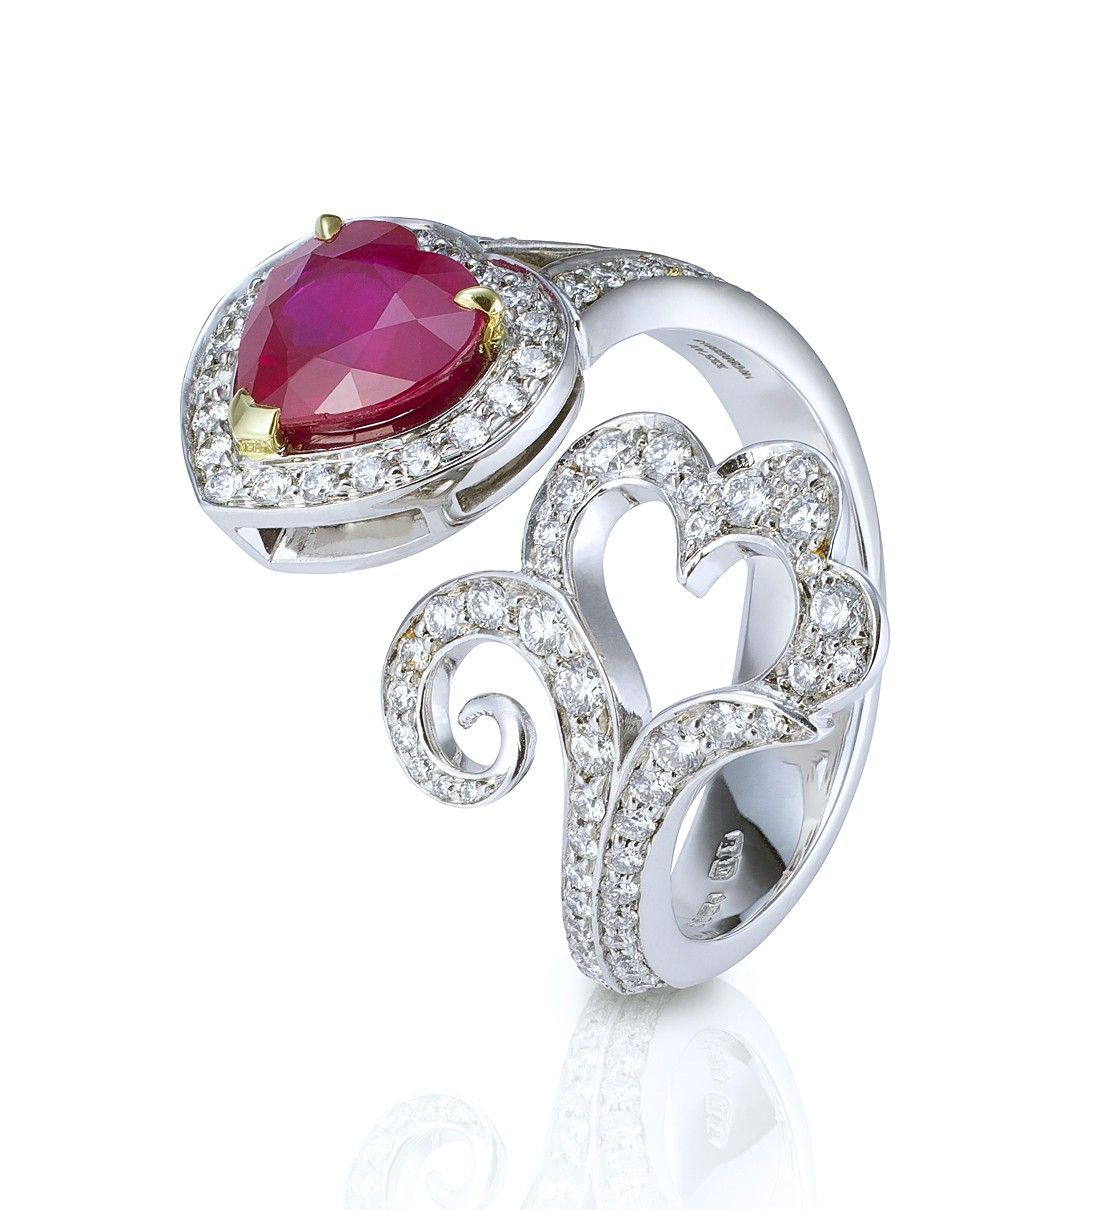 PassEnd Ruby and Diamond Ring. Ruby and diamonds in